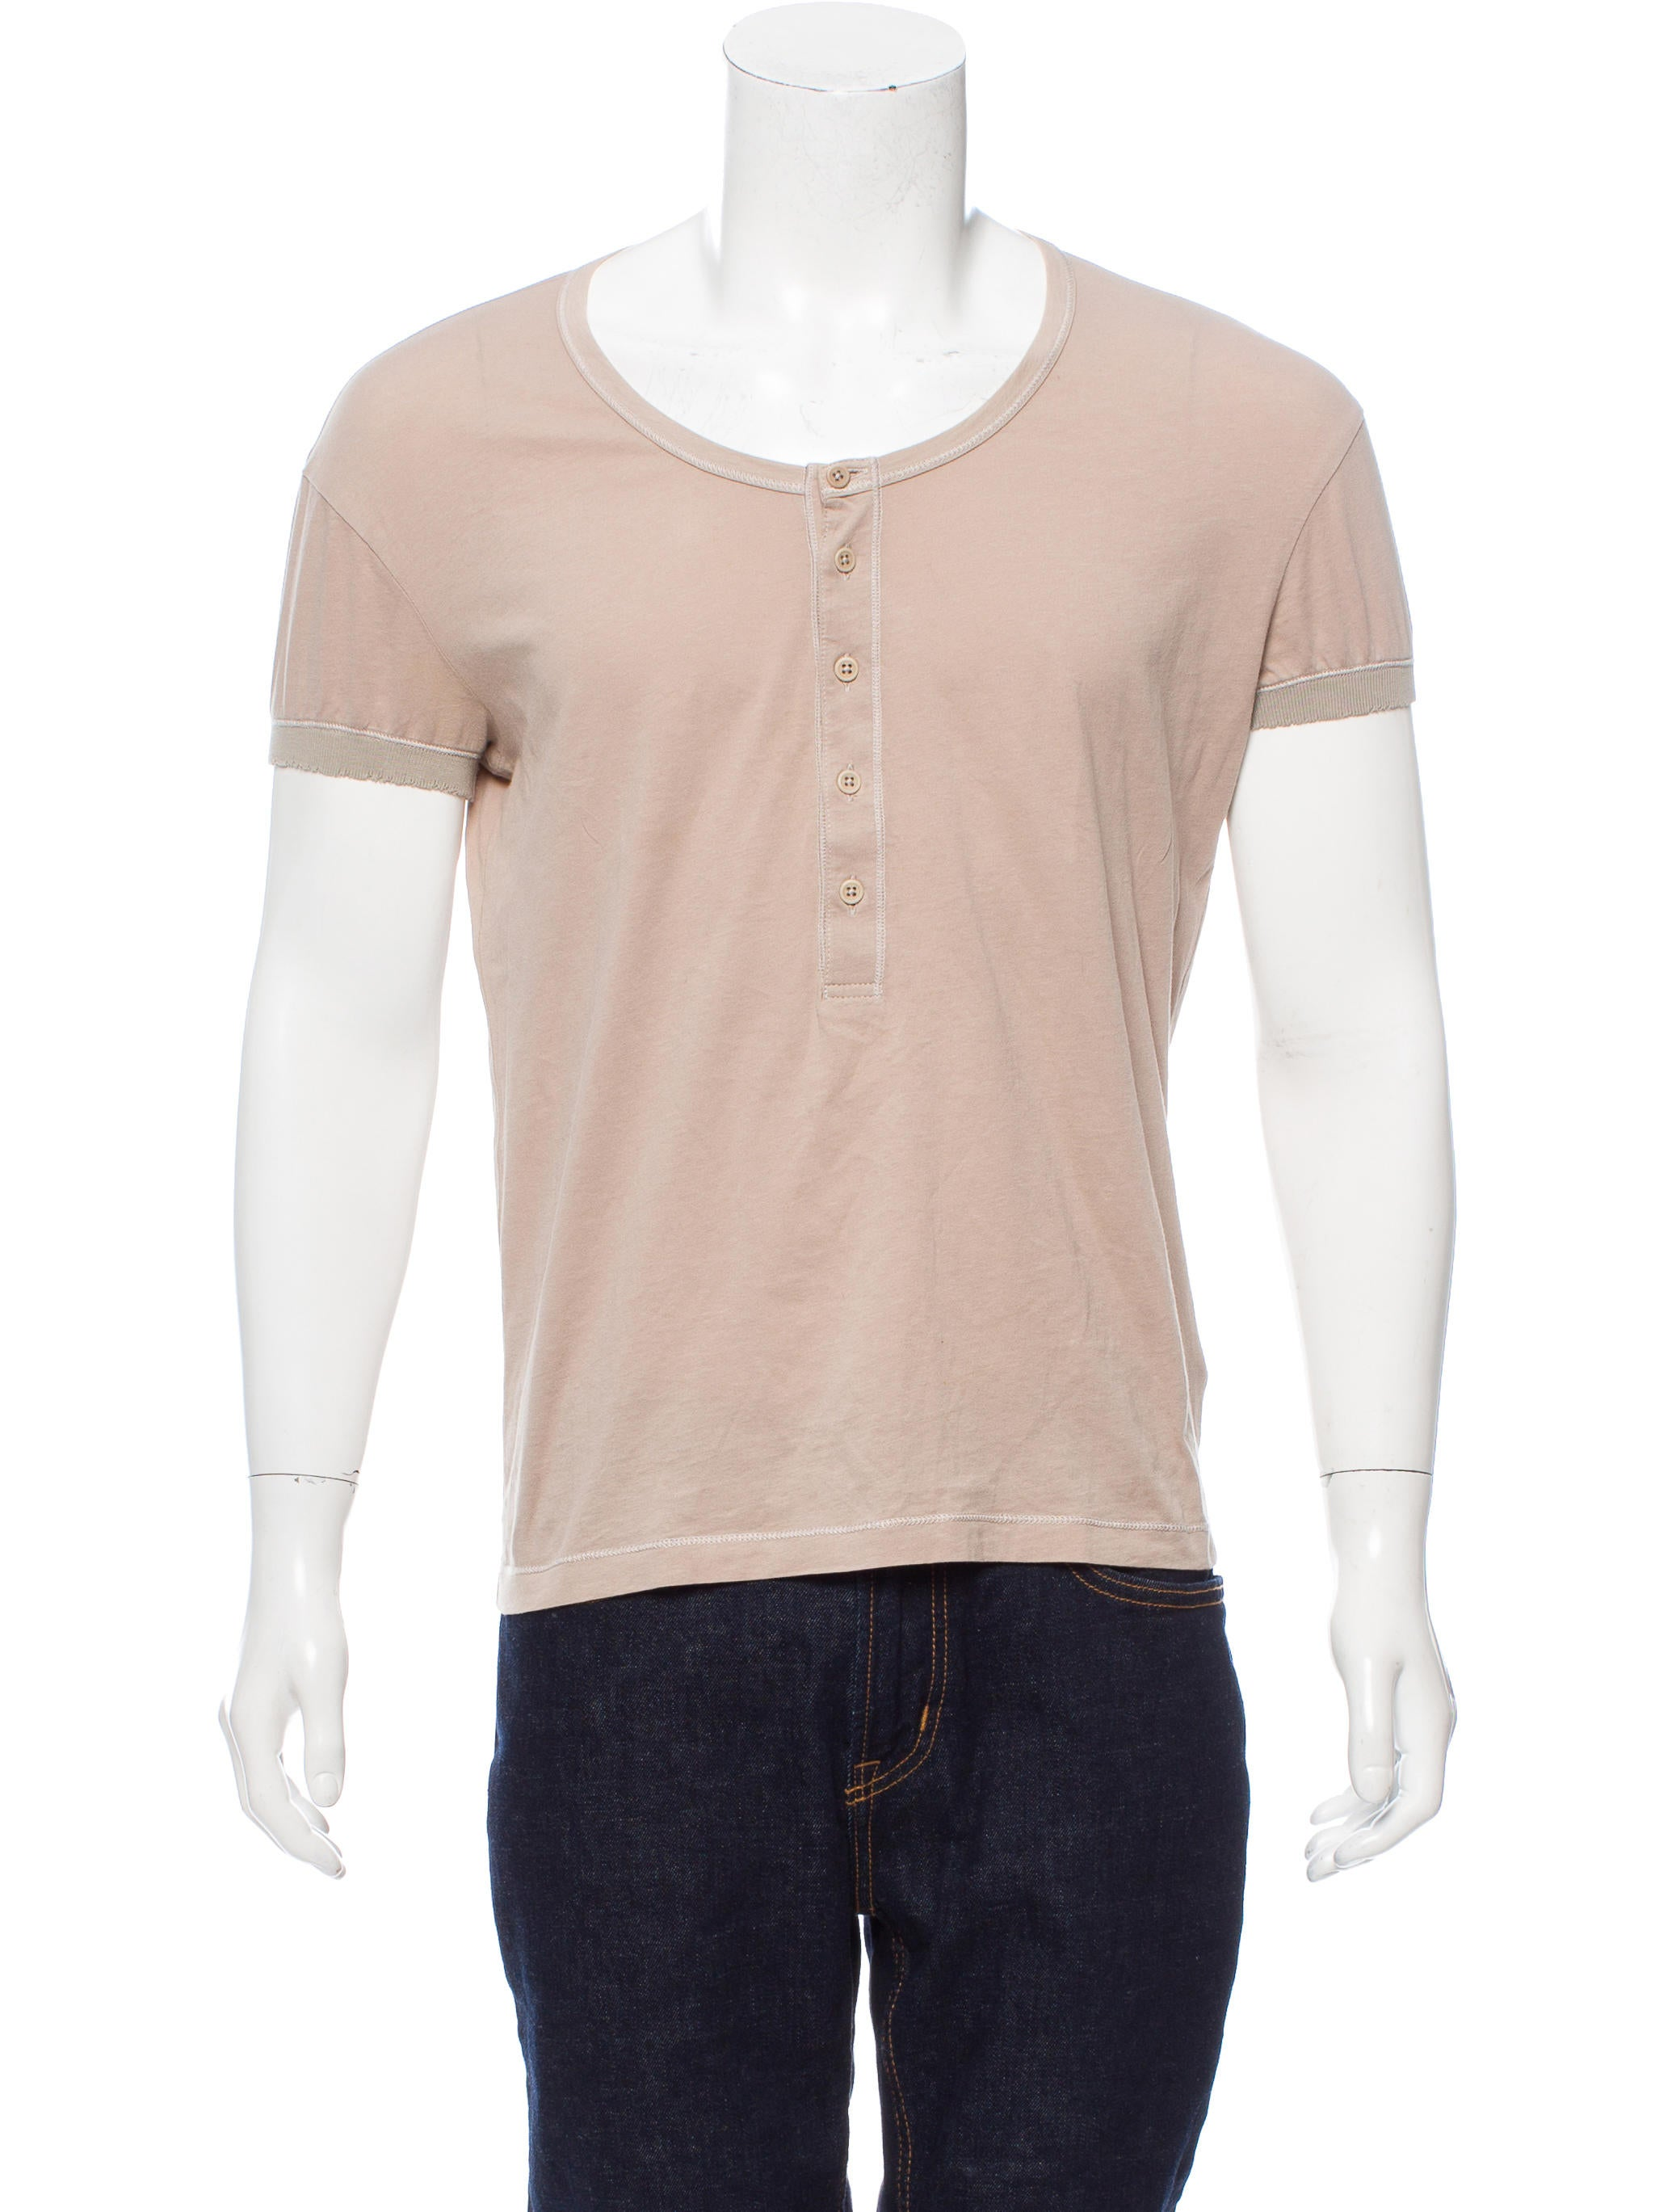 Bottega veneta distressed henley t shirt clothing for Bottega veneta t shirt